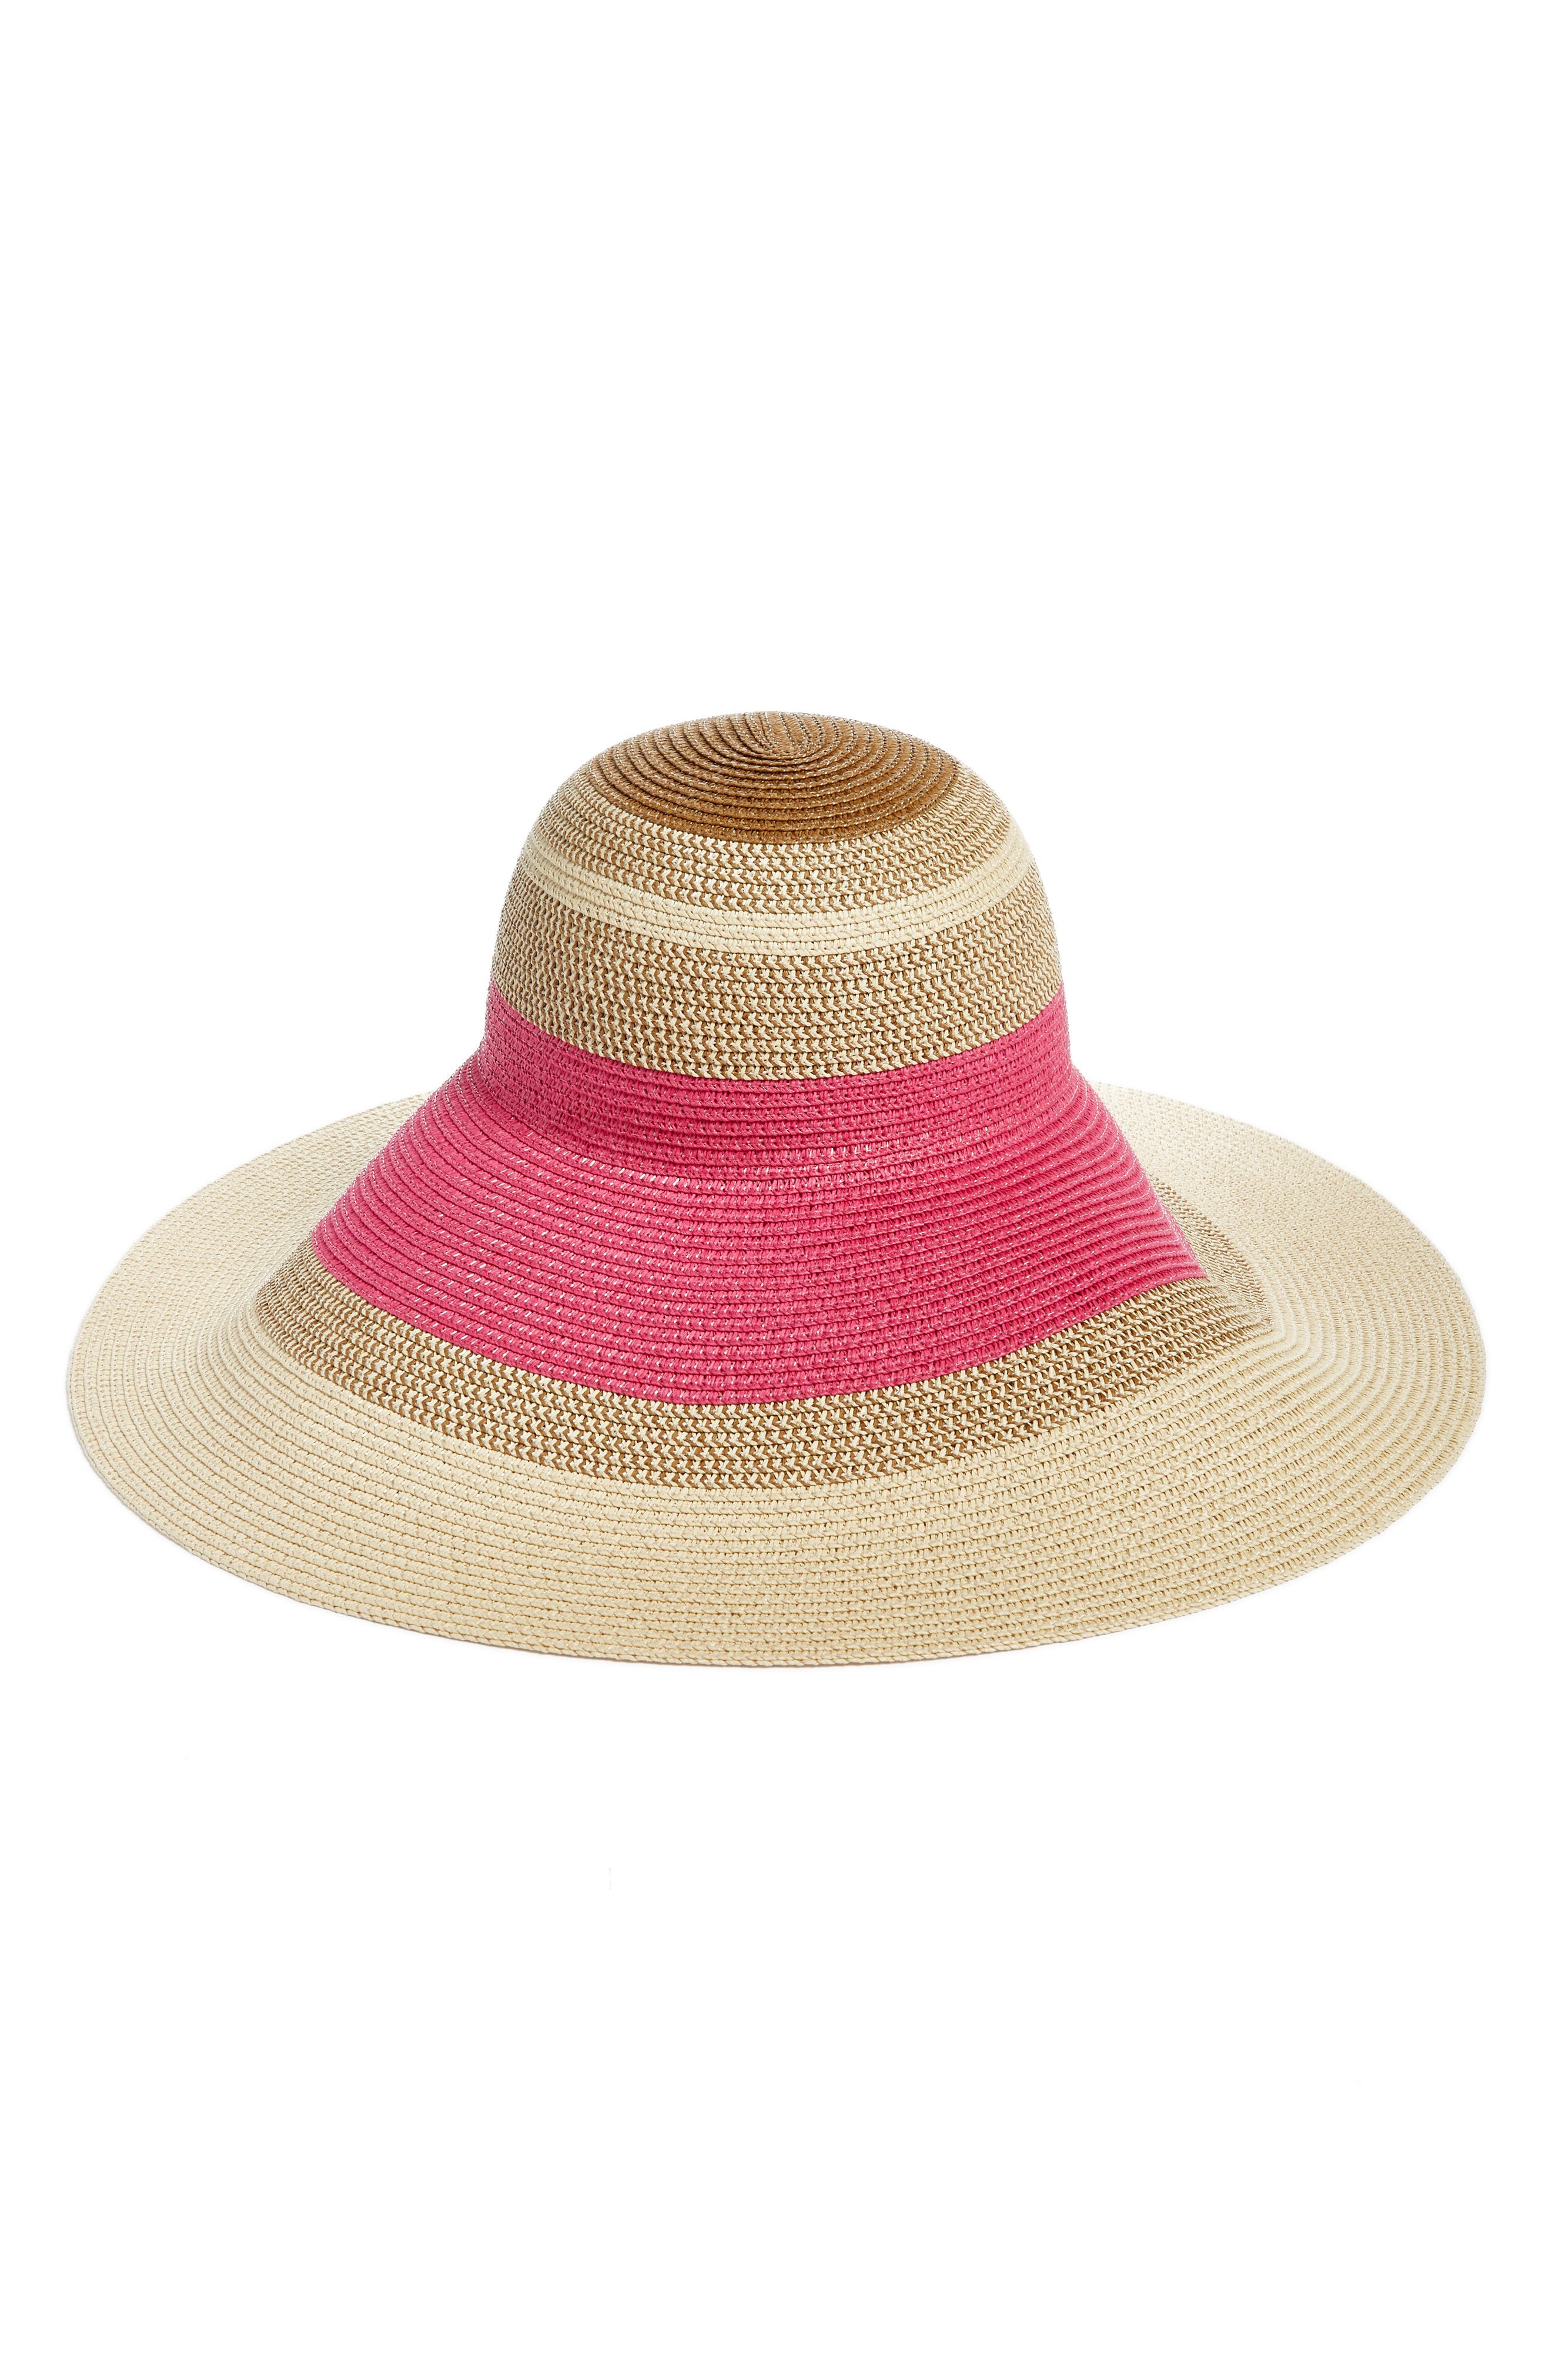 Statement Floppy Straw Hat,                         Main,                         color, Pink Combo